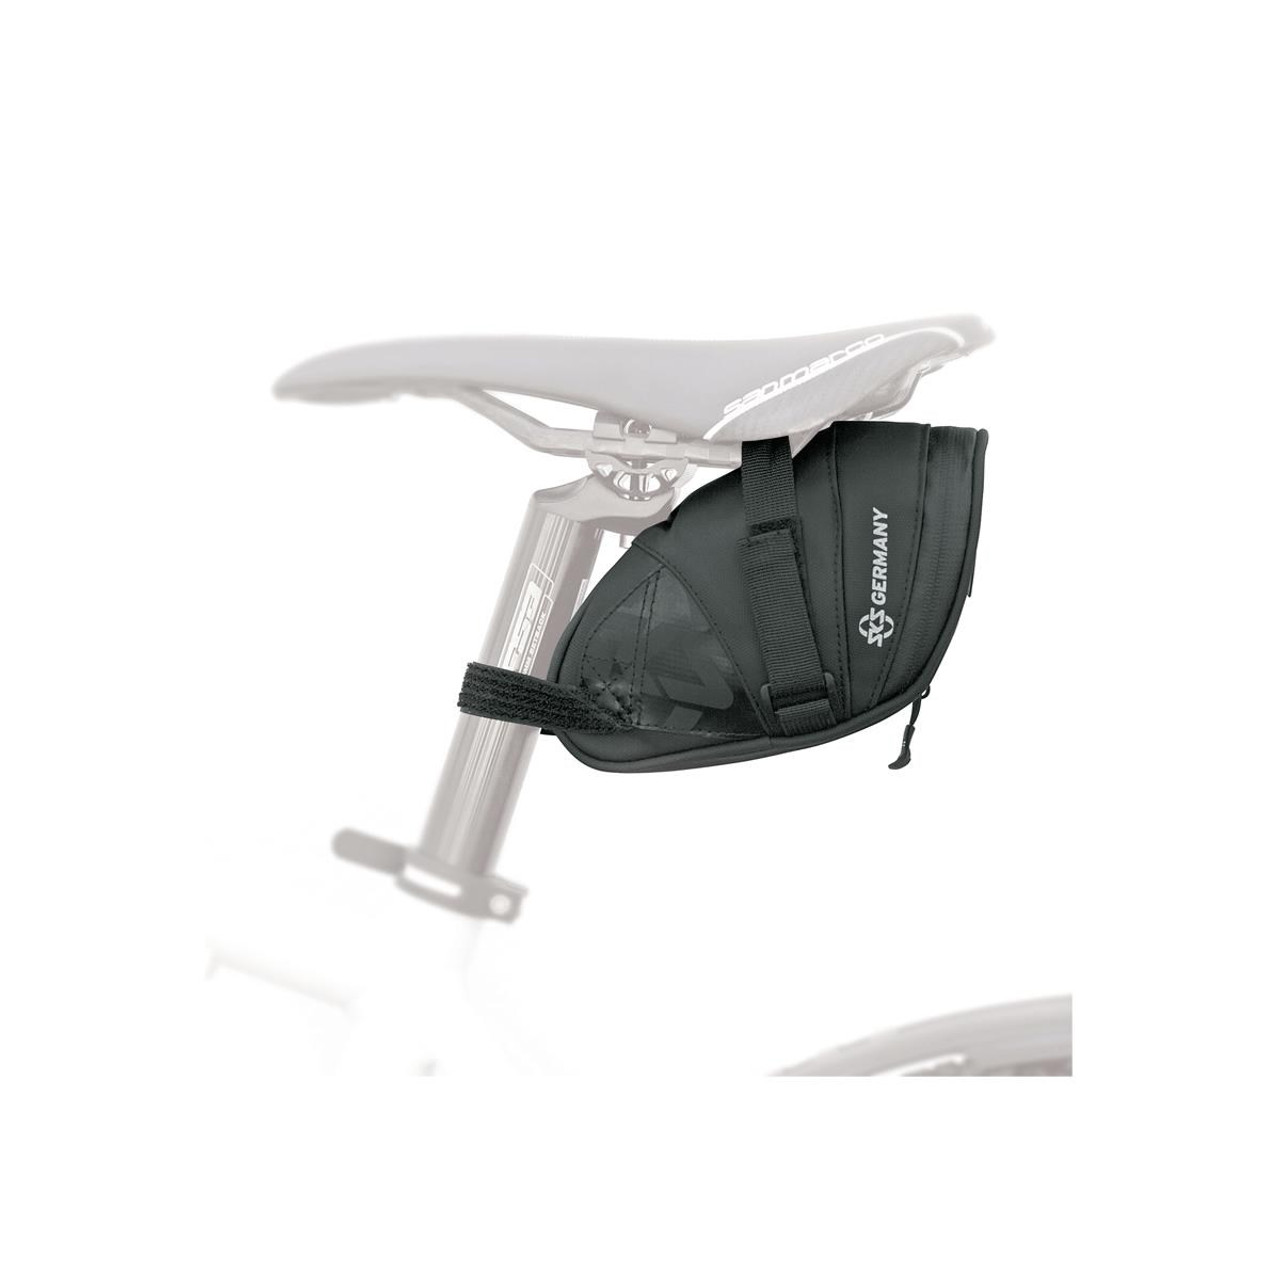 SKS Explorer Saddle Bag Seat Pack Black - All sizes